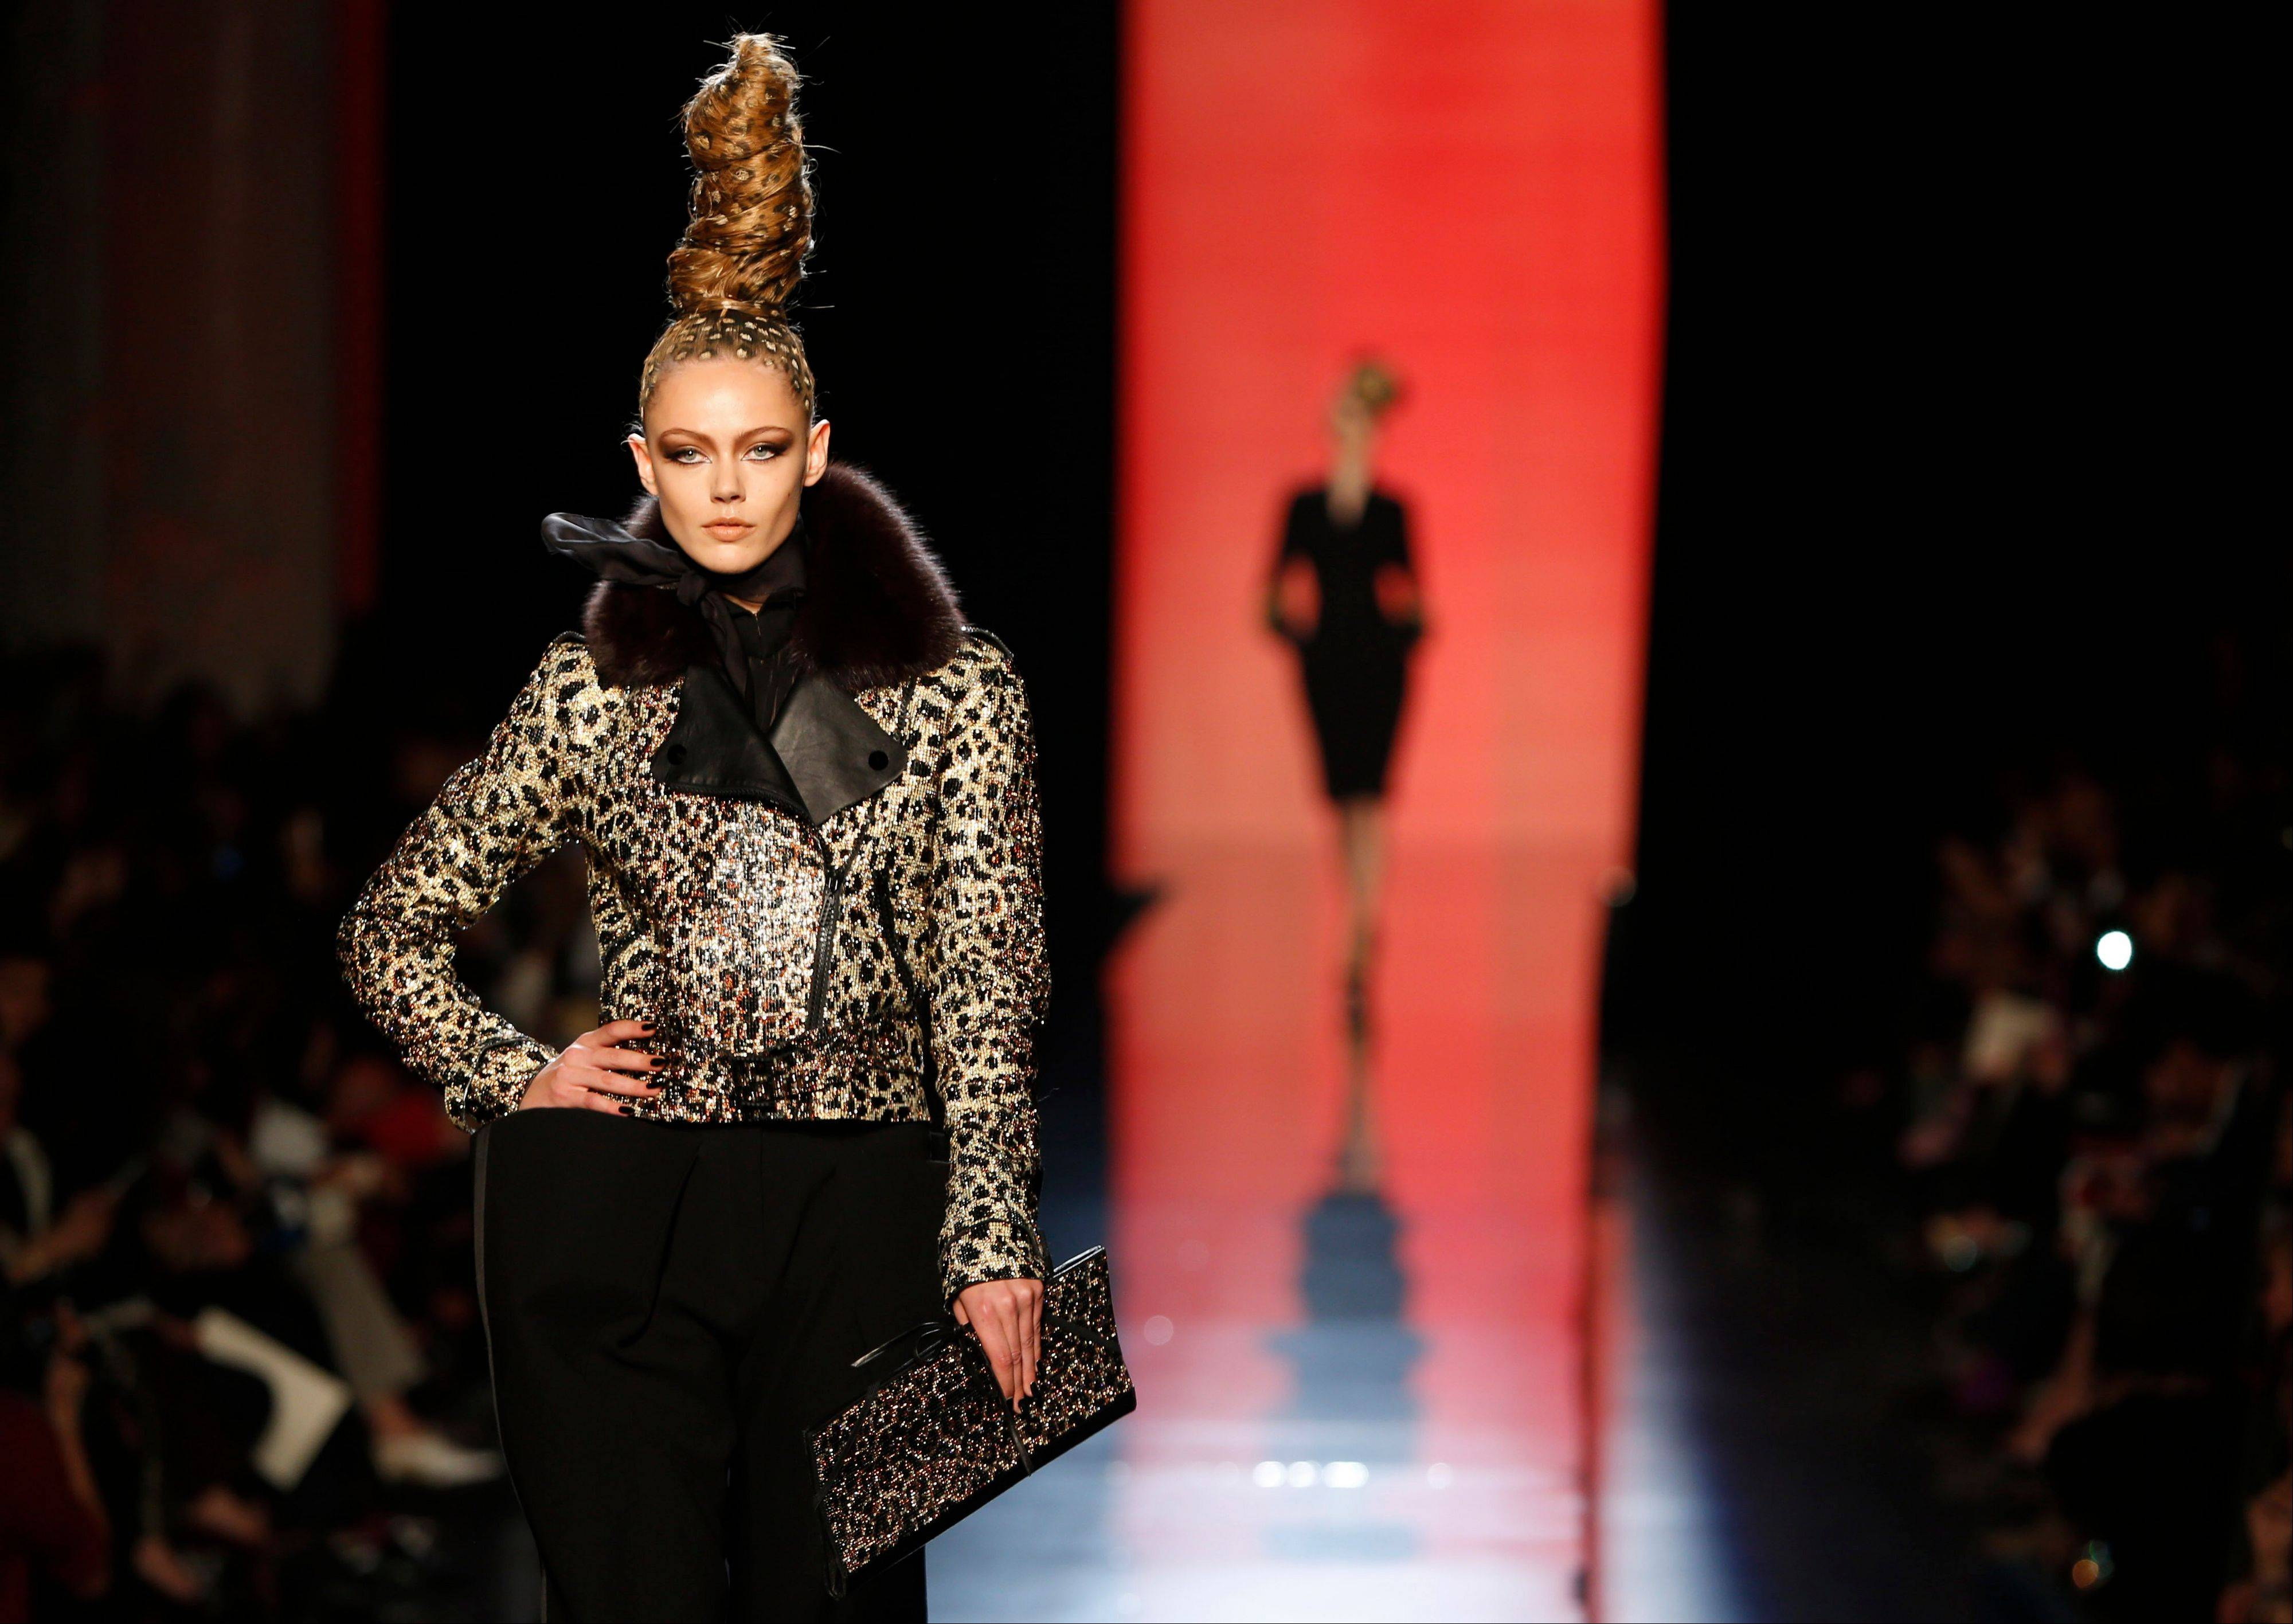 A model wears a creation for Jean-Paul Gaultier's Haute Couture Fall-Winter 2013-2014 collection.